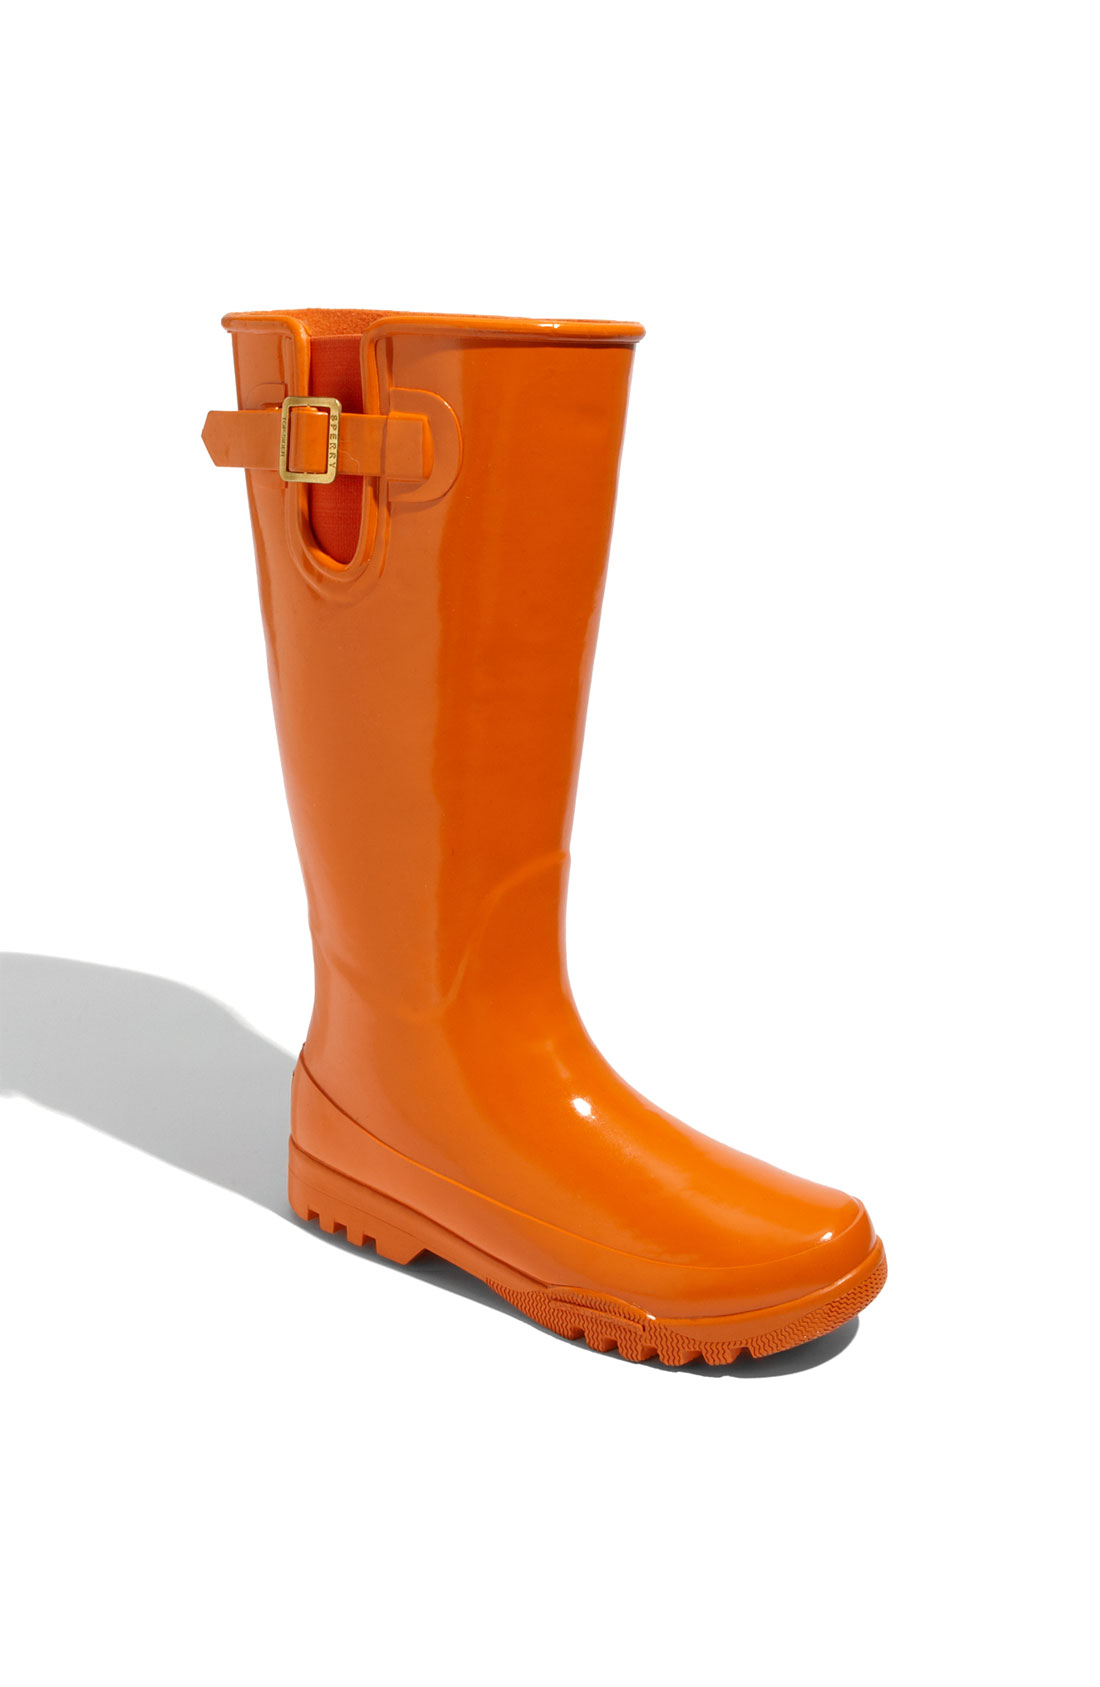 Sperry Top Sider Pelican Tall Rain Boot Women In Orange